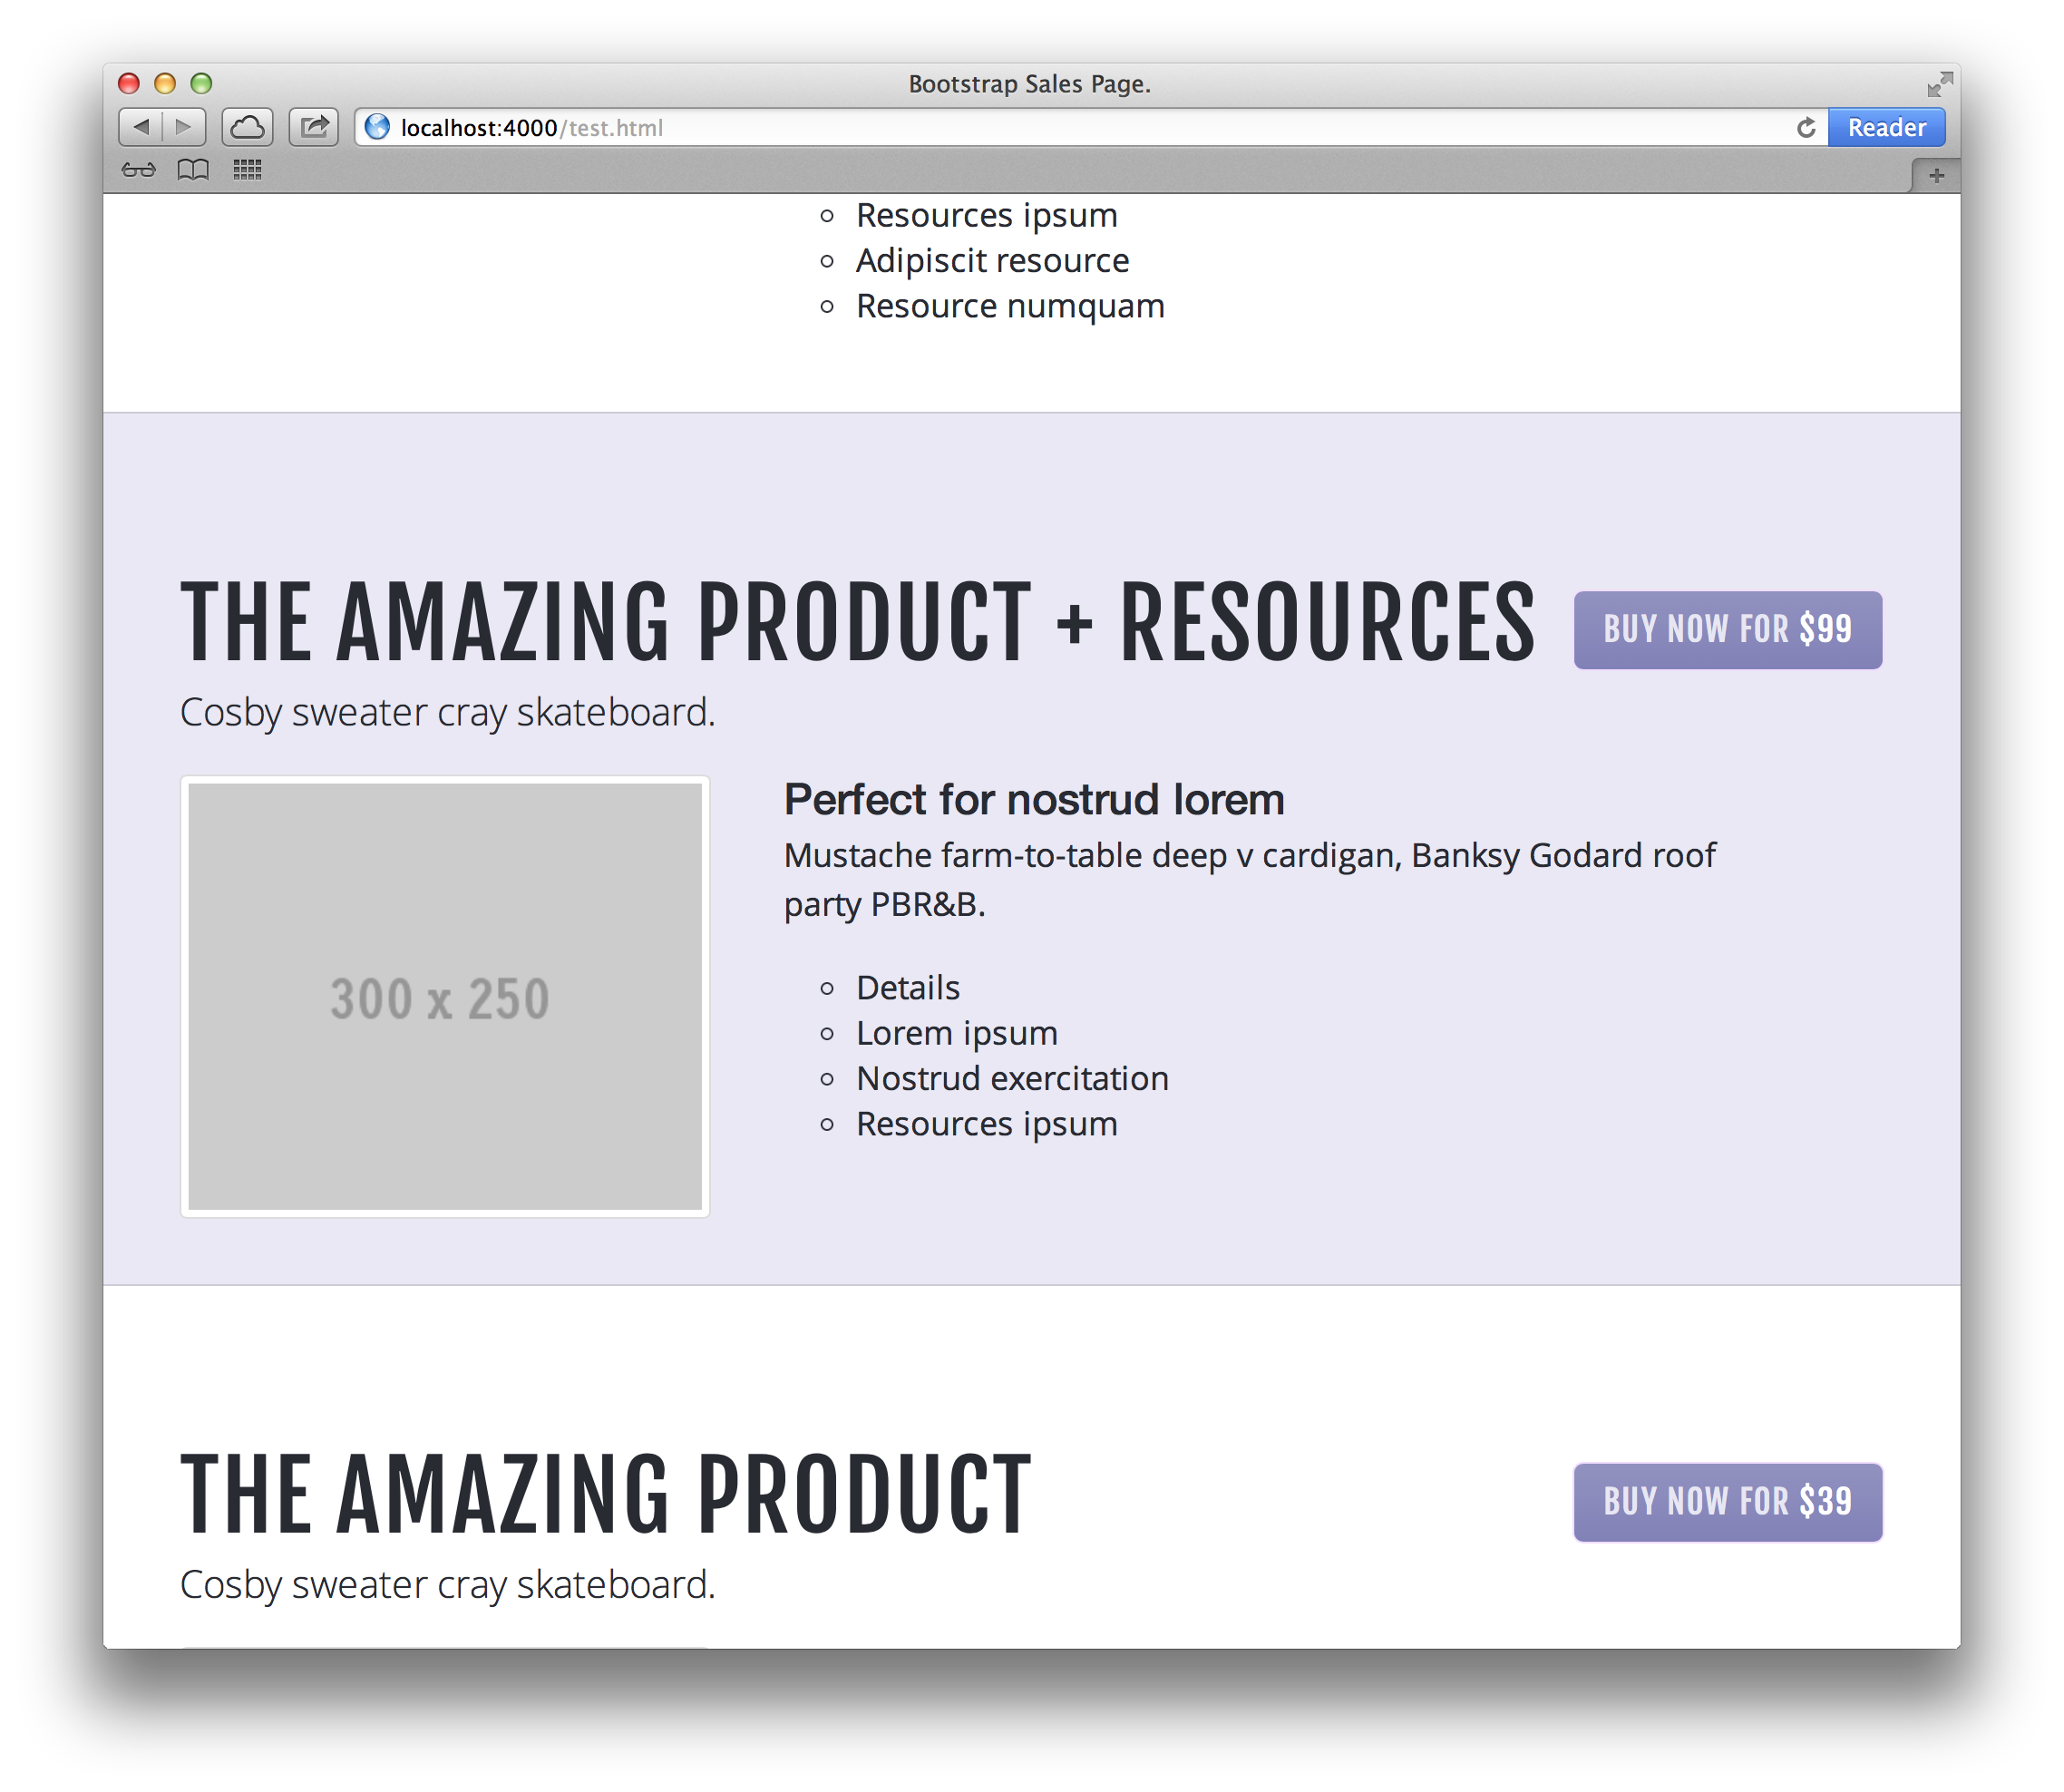 Bootstrap Sales Page Example 4